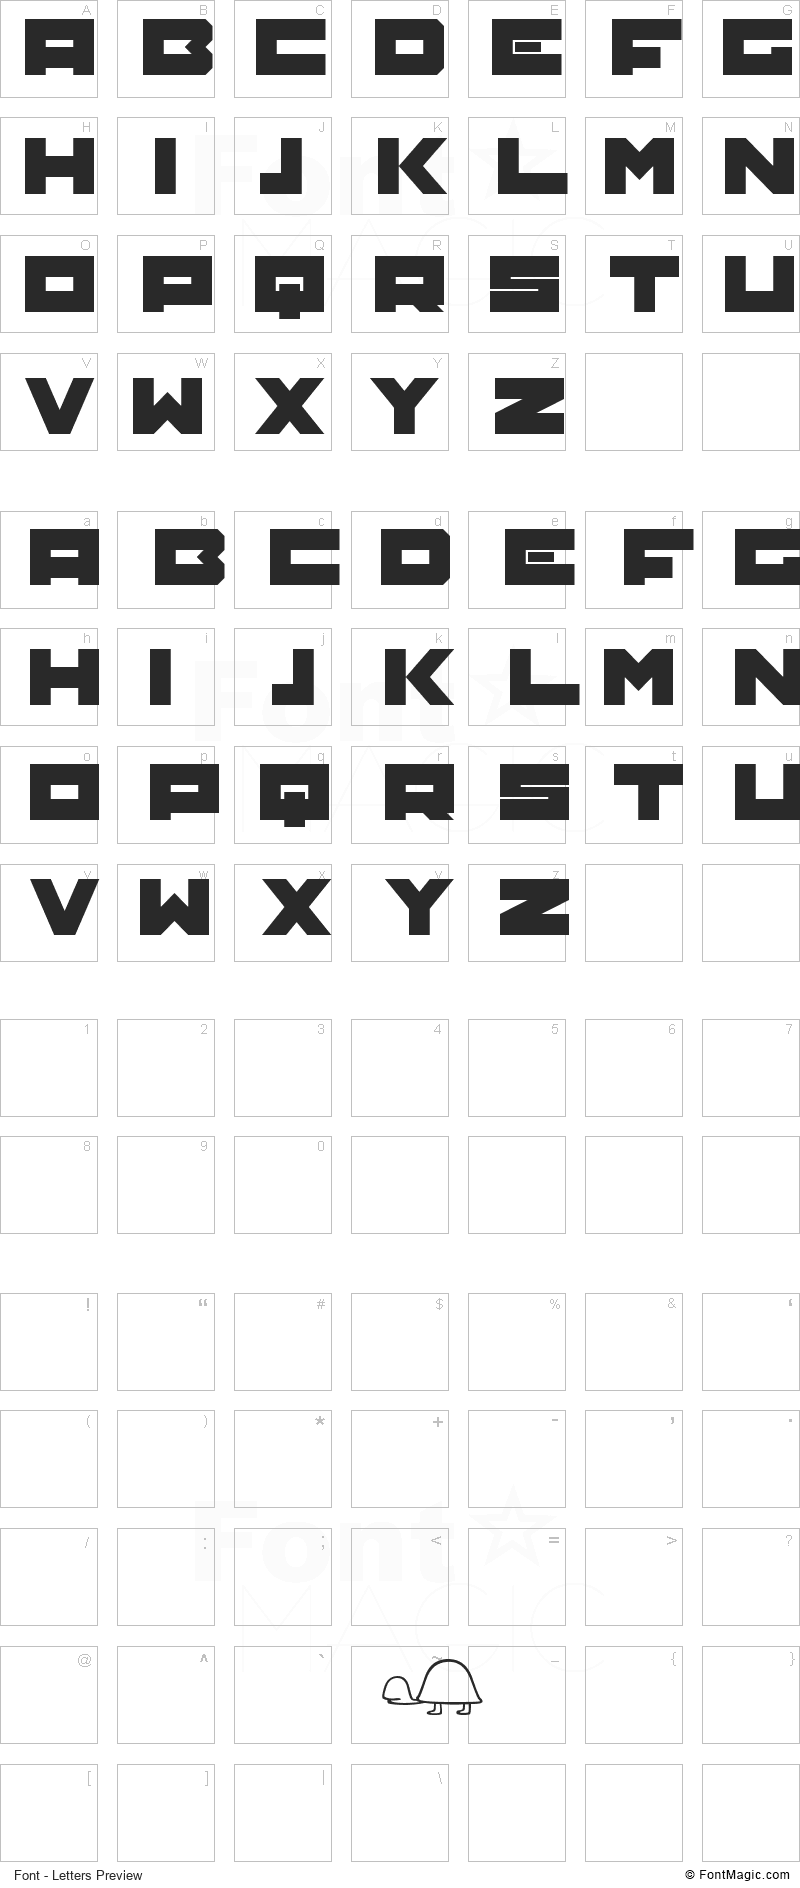 TRTL Font - All Latters Preview Chart